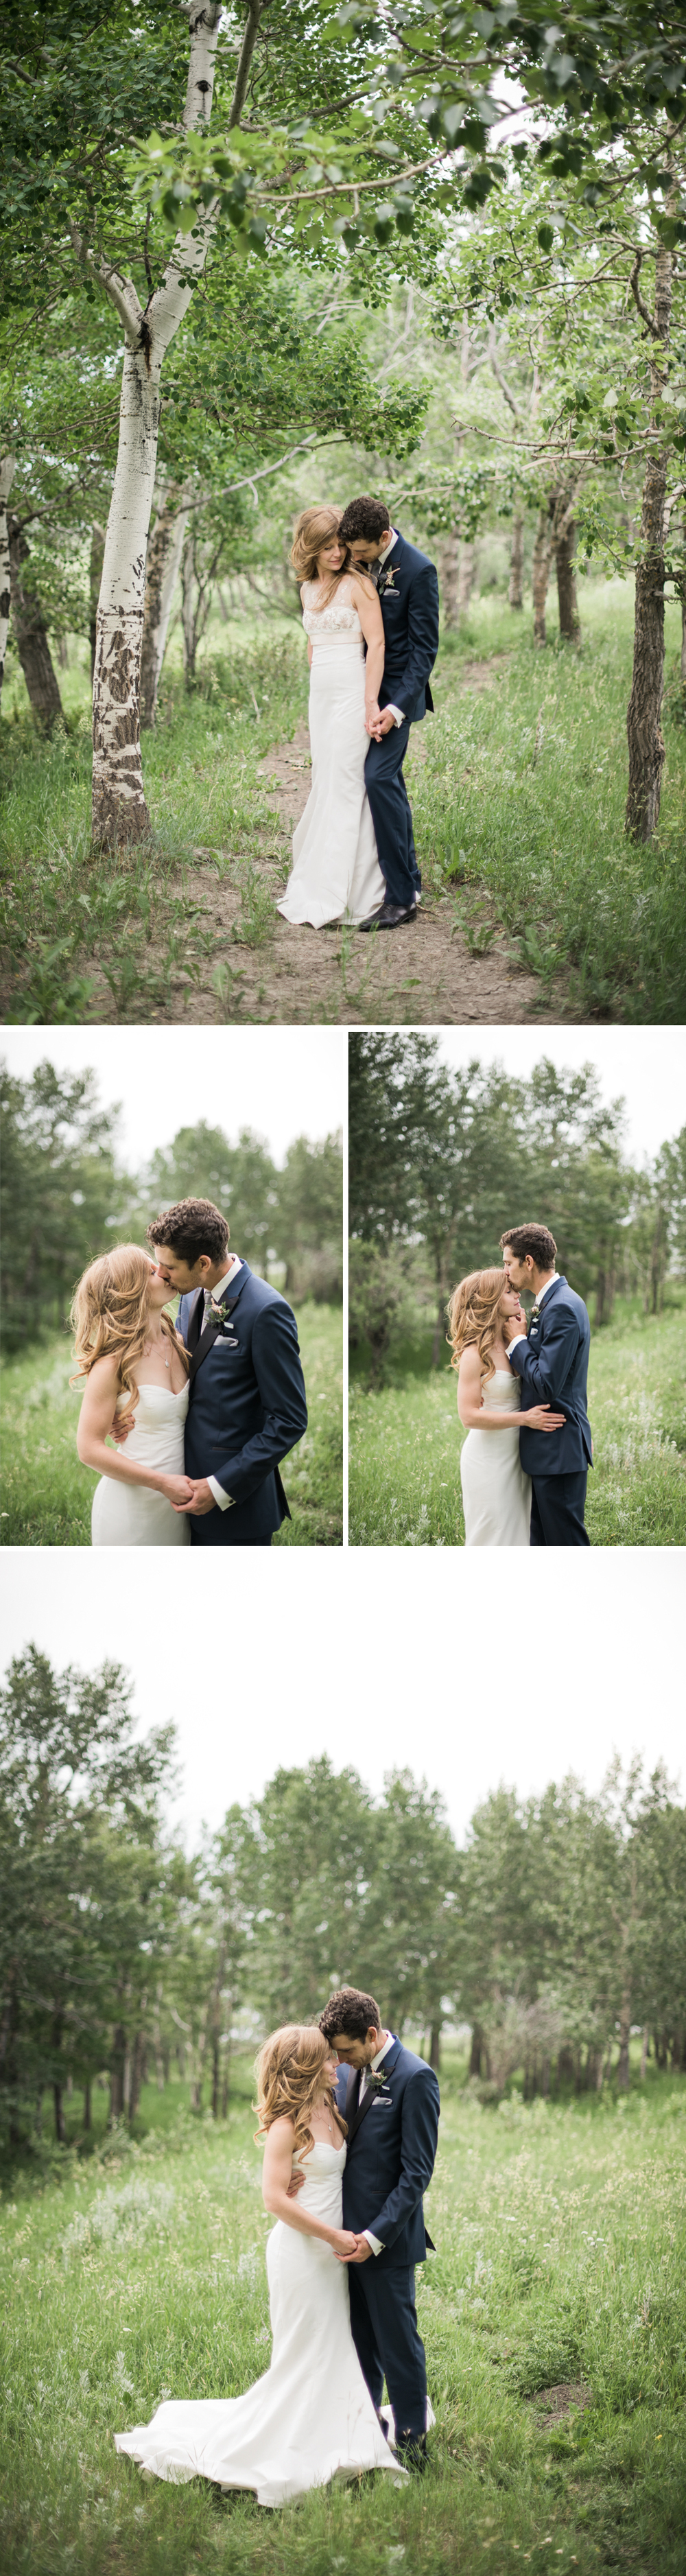 Calgary Wedding Photographer 16